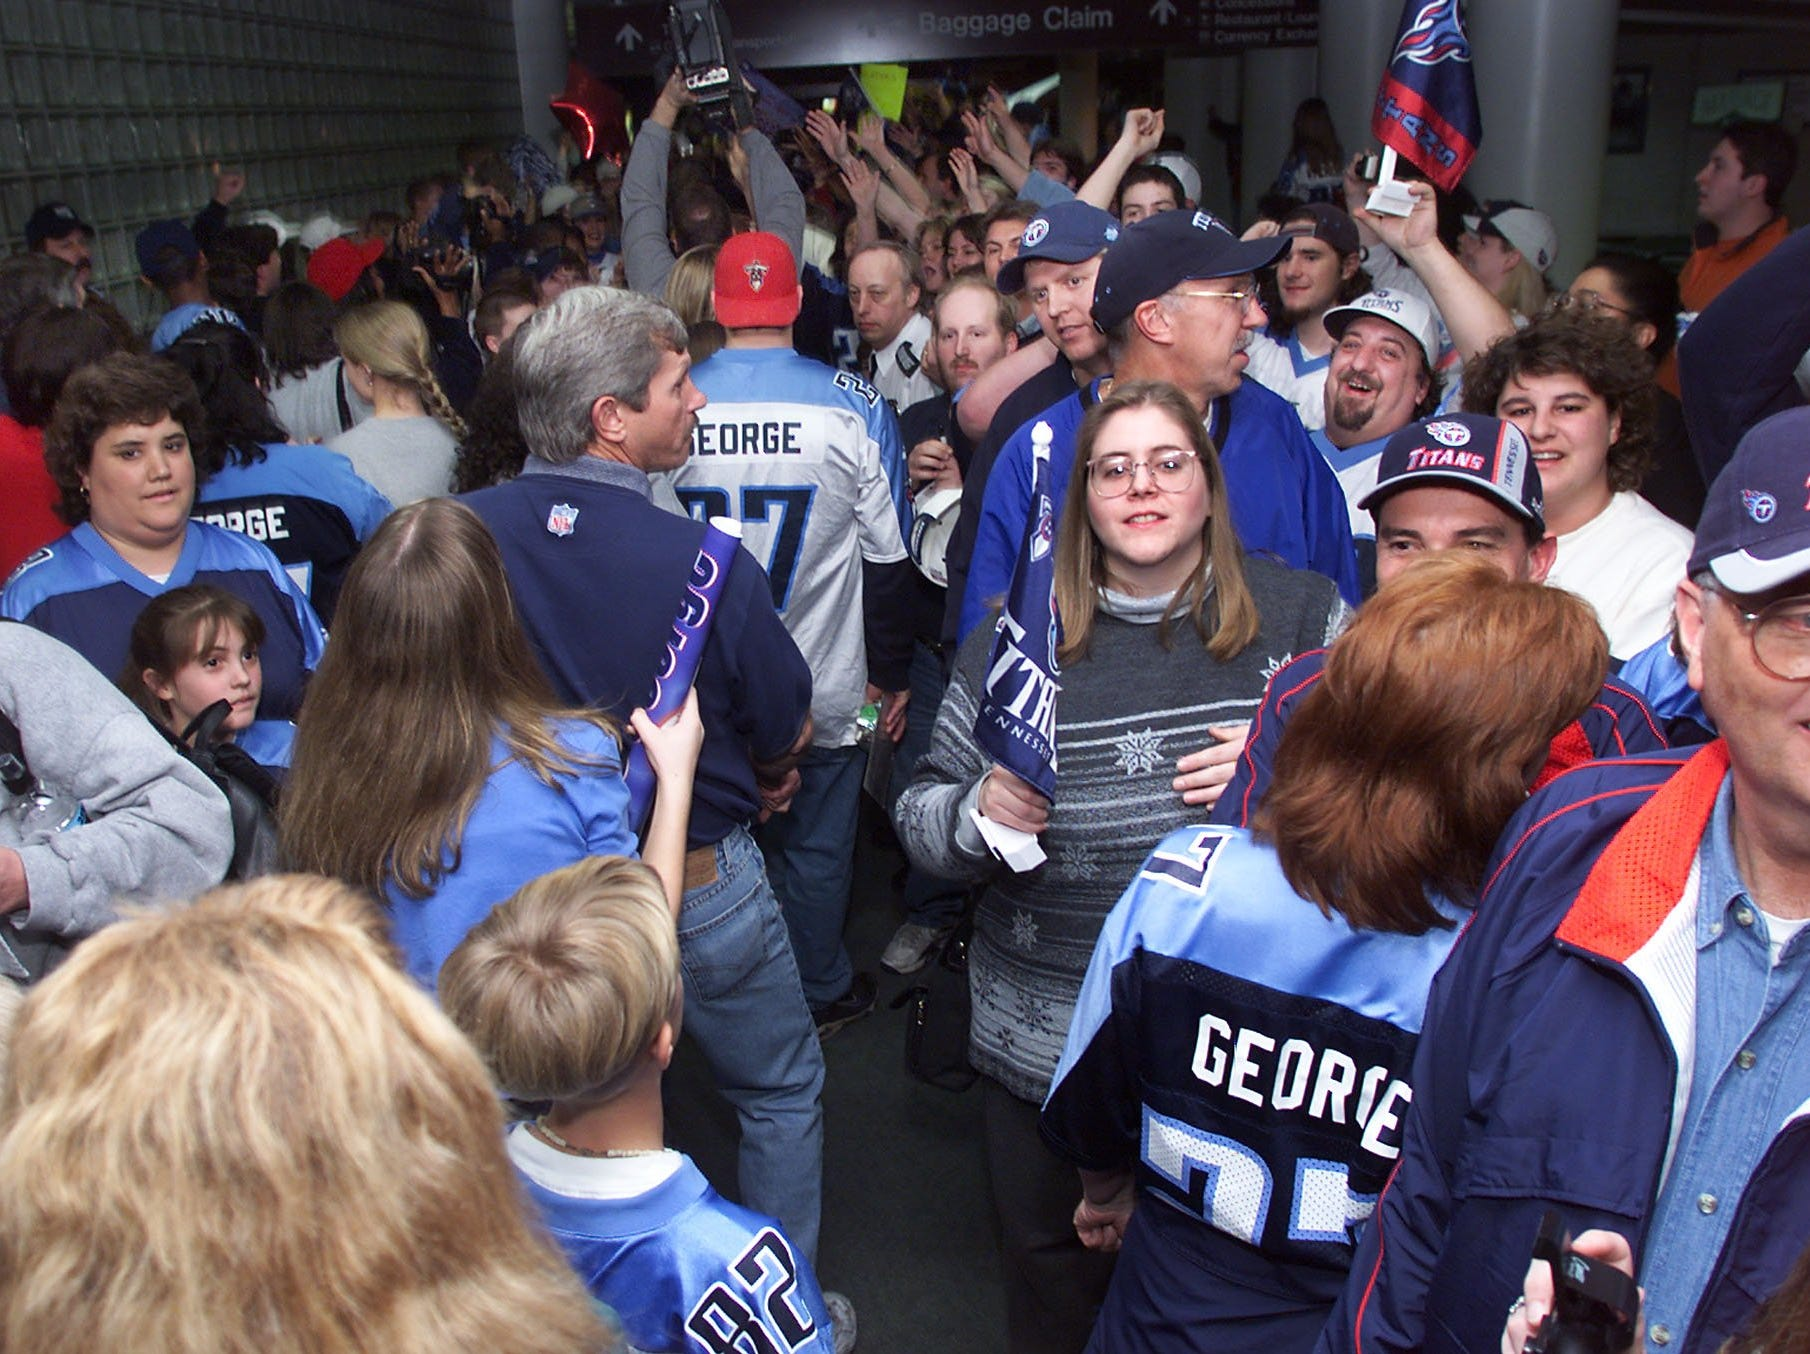 Hundreds out of thousands of Tennessee Titans fans line the corridor at Nashville International Airport Jan. 16, 2000 as the team arrives back after their victory over the Indianapolis Colts in the AFC divisional playoff game in Indianapolis.